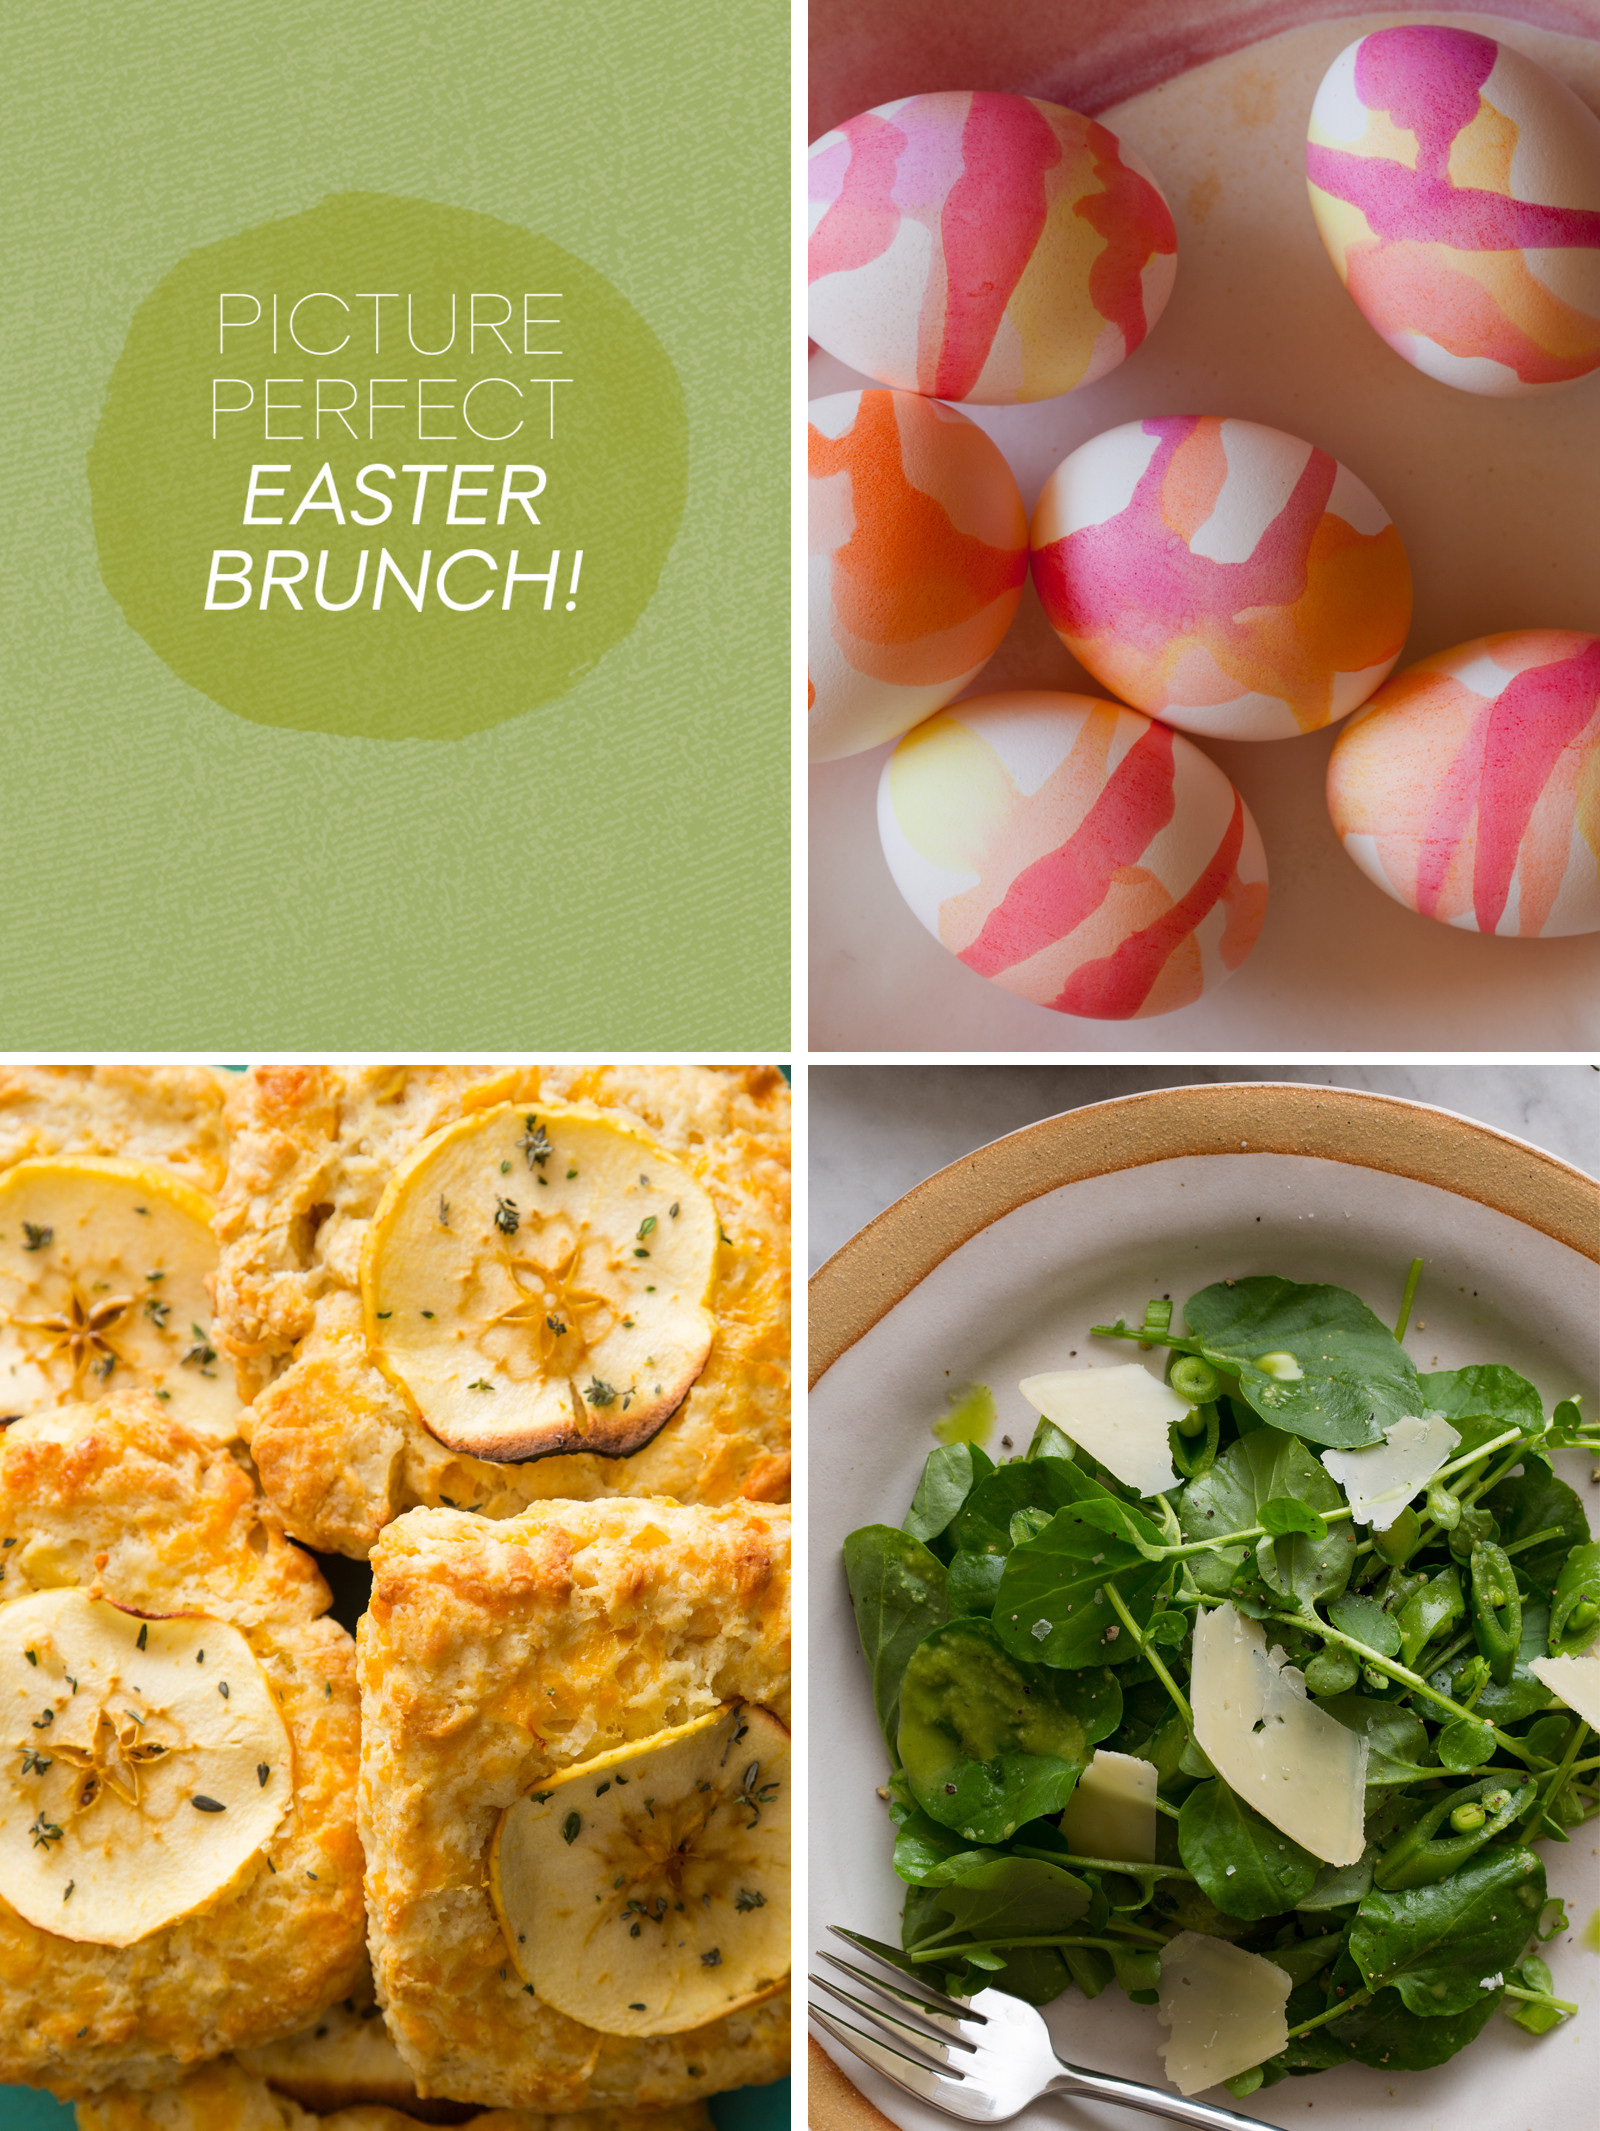 Perfect Easter Dinner Menu  Picture Perfect Easter Brunch